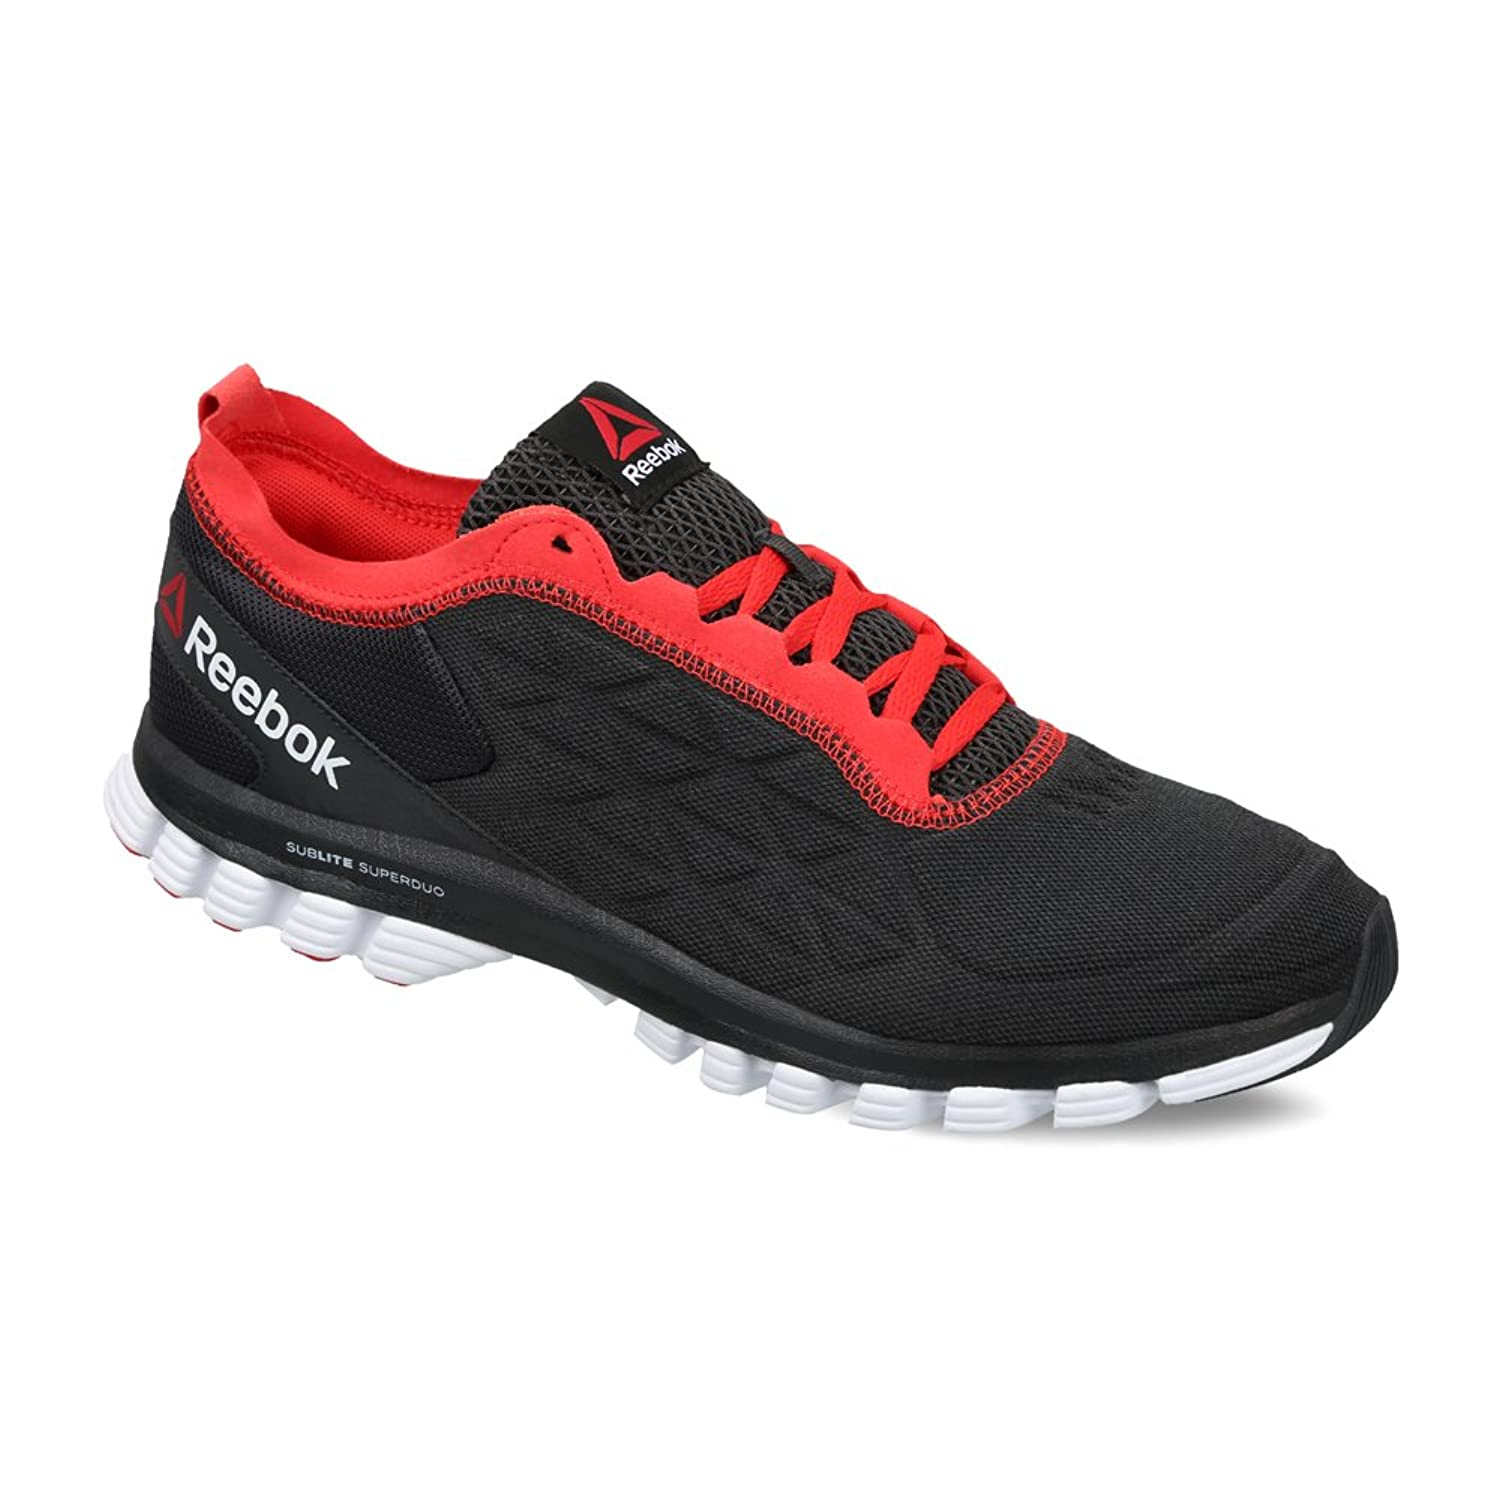 Reebok Mens Sublite Super Duo 30 Running Shoes